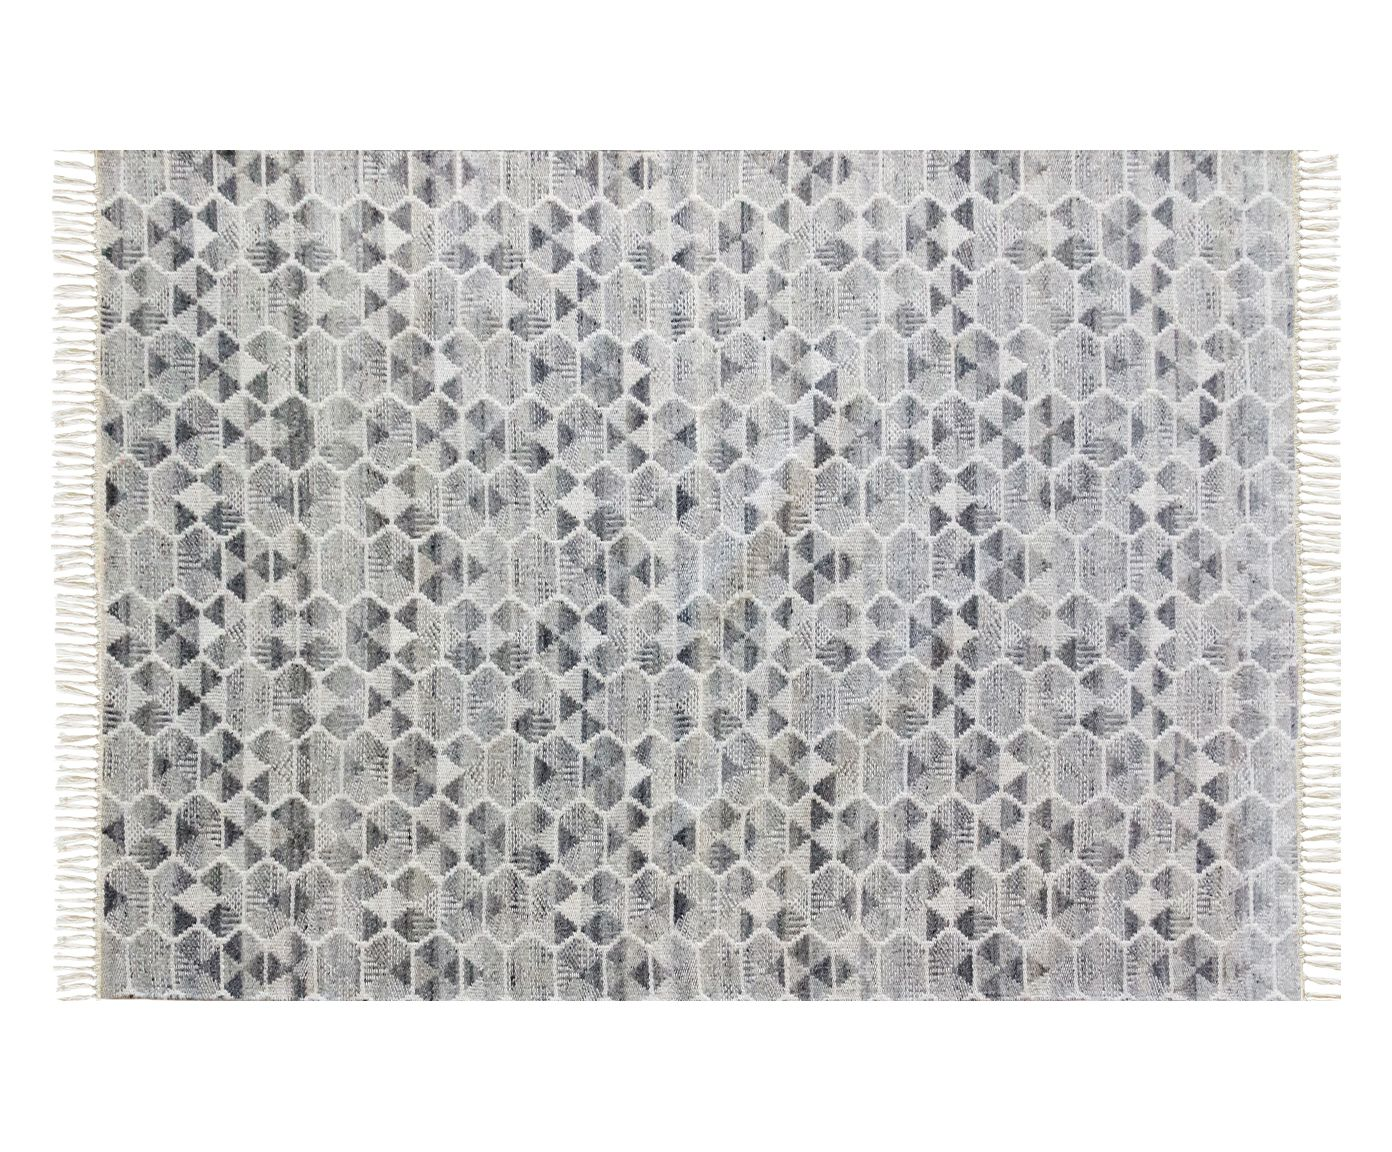 Tapete Indiano Nordic Cinza - 150X200cm   Westwing.com.br